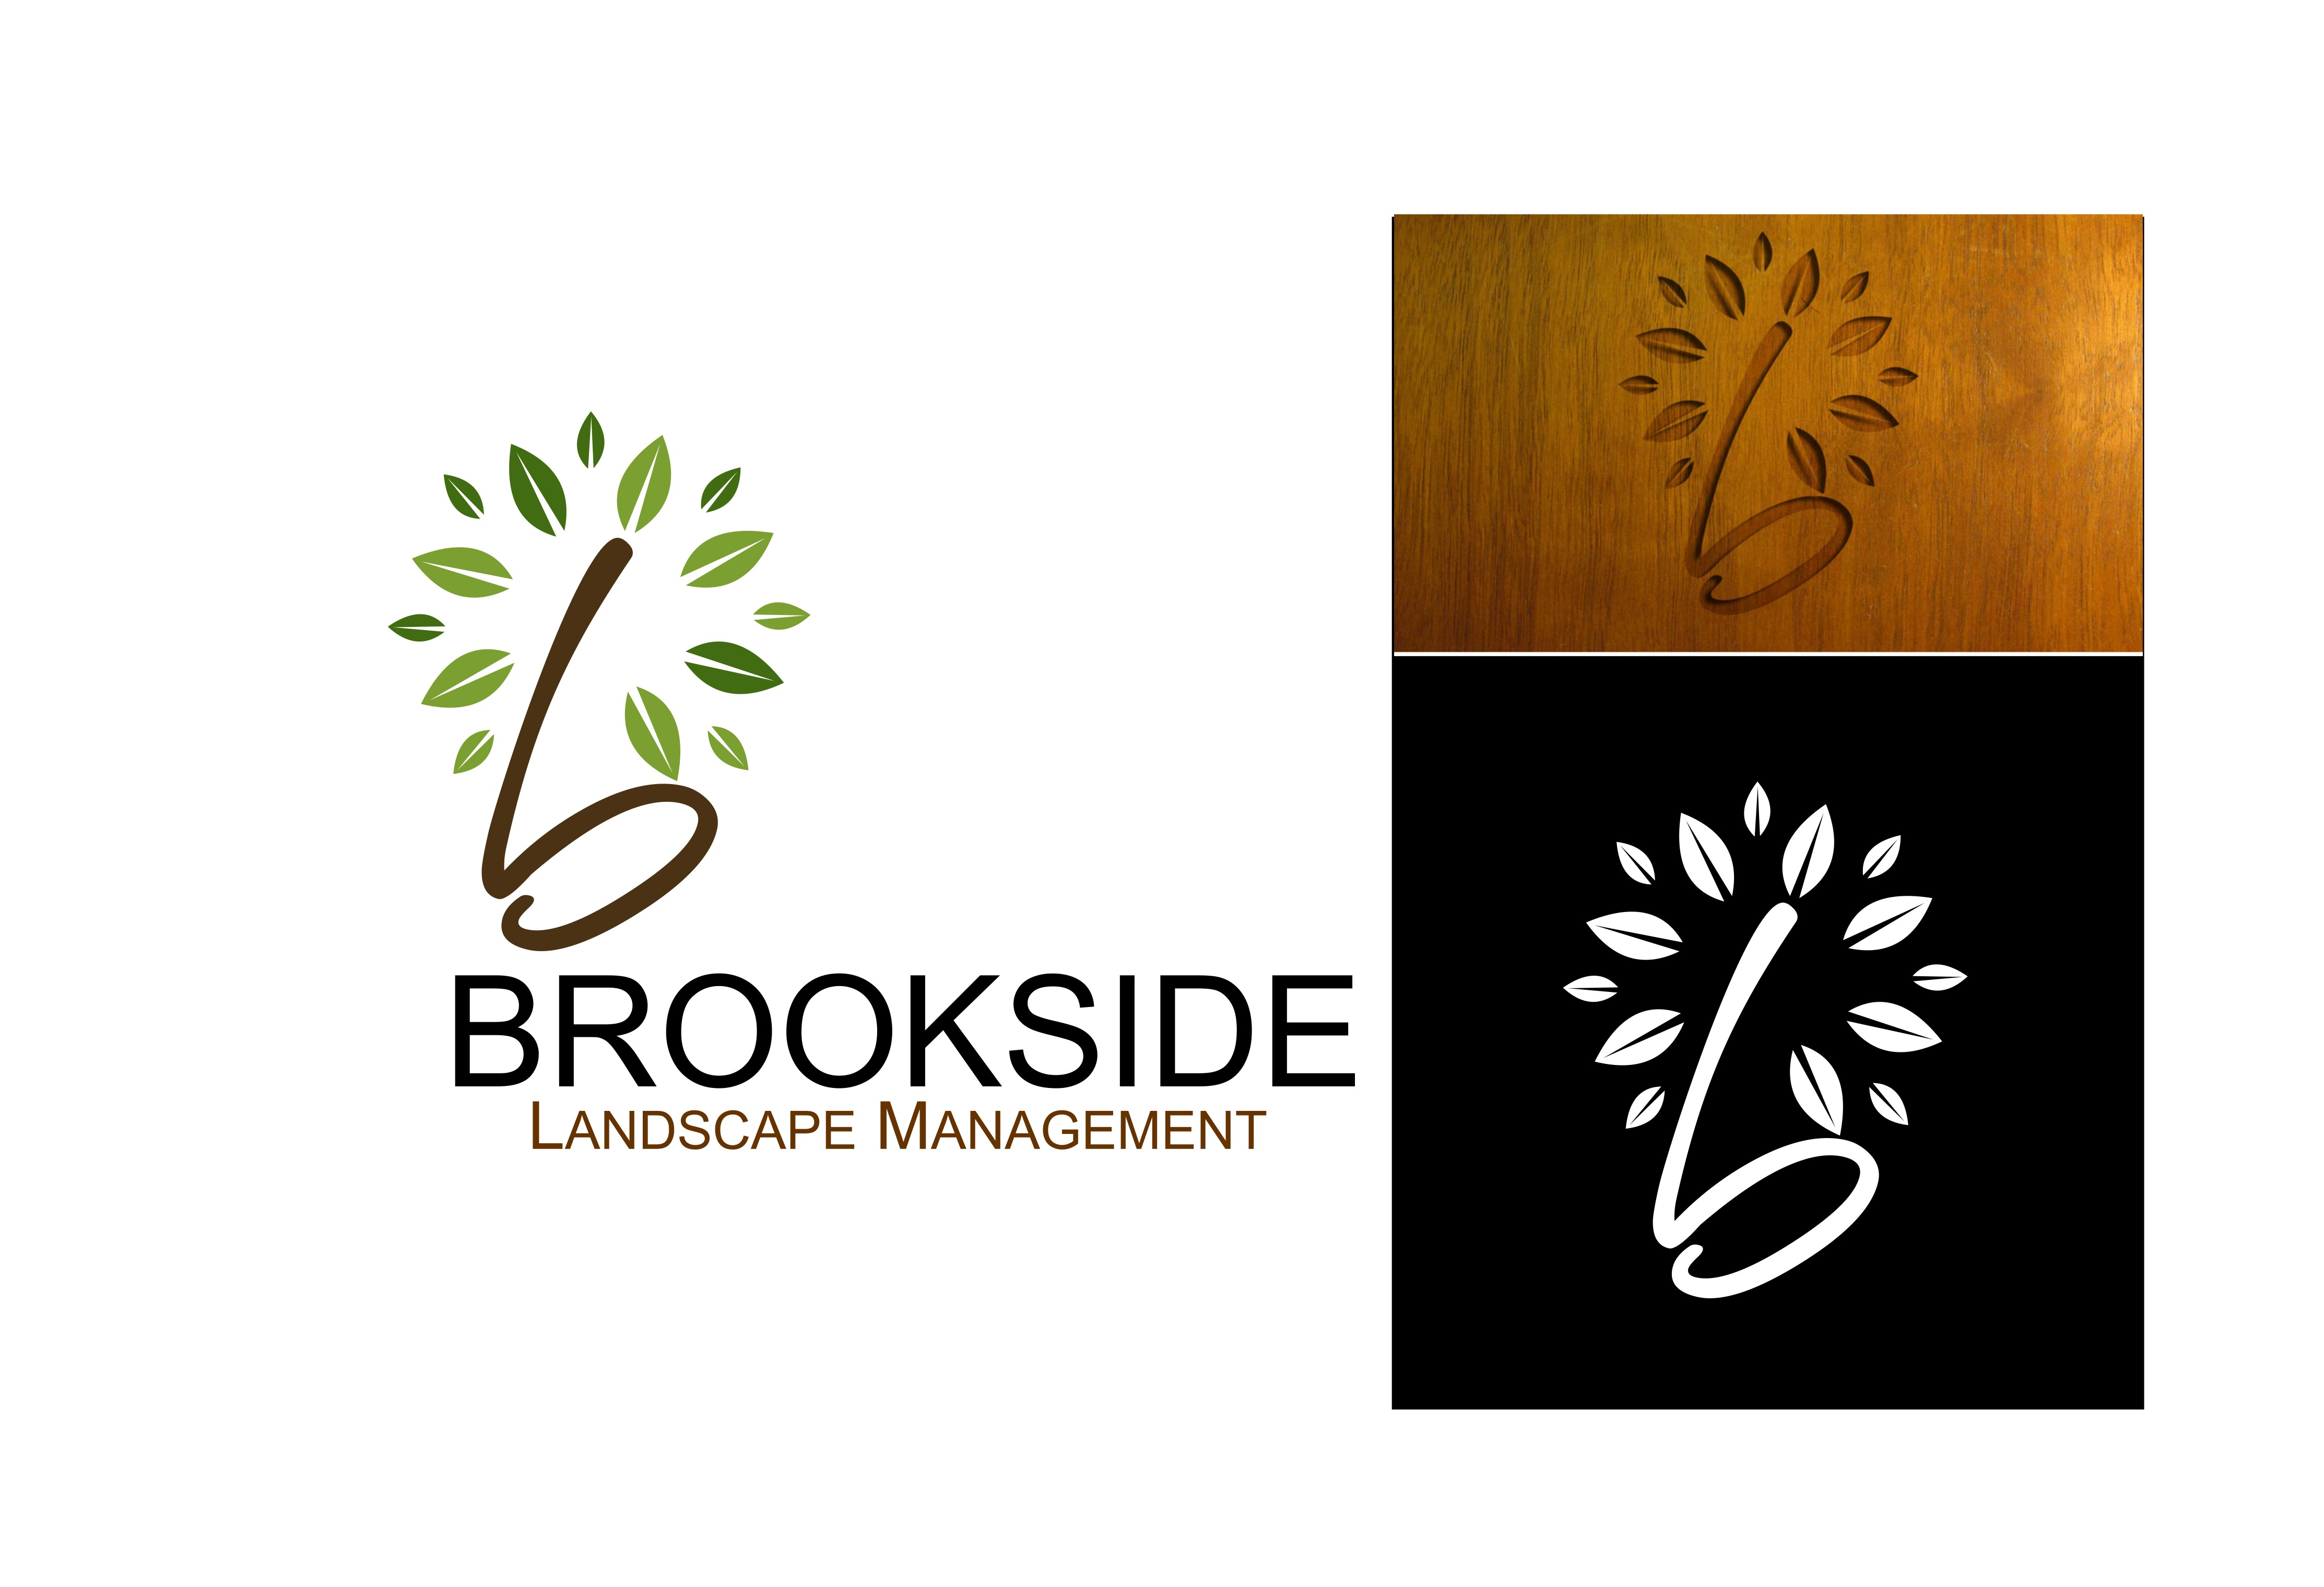 Logo Design by Crispin Jr Vasquez - Entry No. 141 in the Logo Design Contest New Logo Design for Brookside Landscape Management.